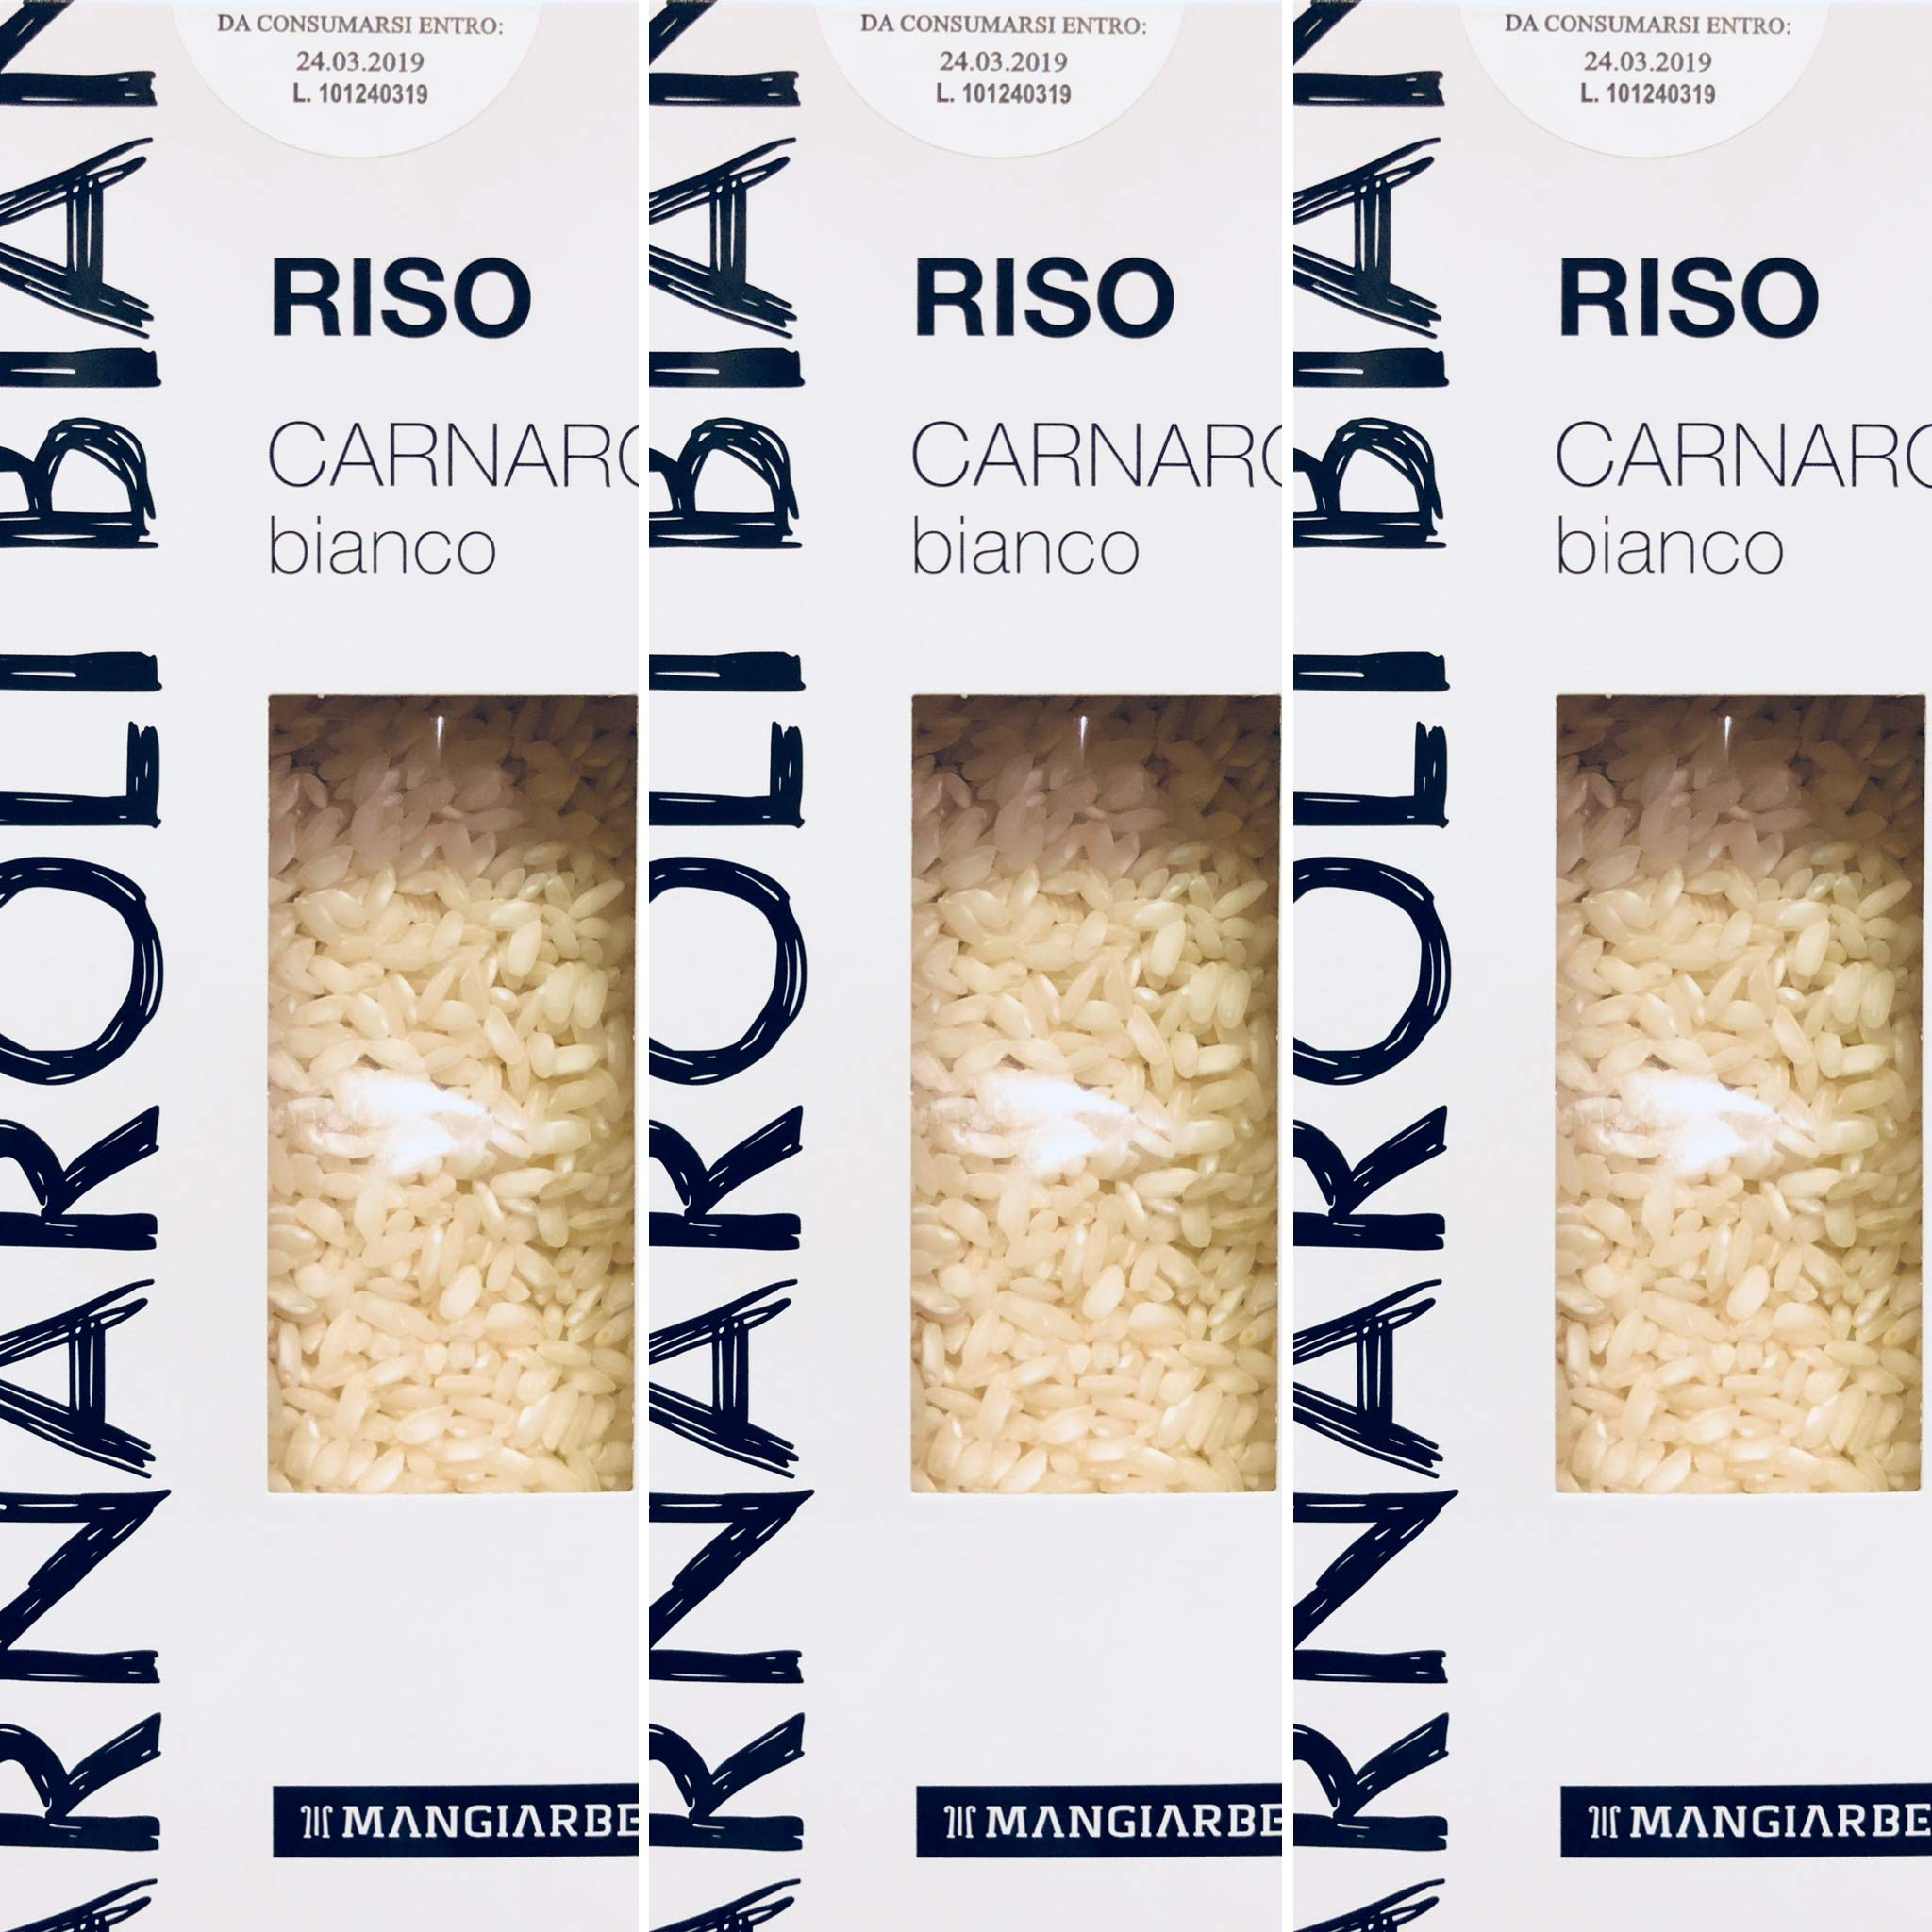 Aged Gourmet Carnaroli Risotto Rice - Real Aged Carnaroli Classico - Produced and Imported From Italy - by Serendipy Life (2.3 Lb) (3 Pack) by Serendipity Life